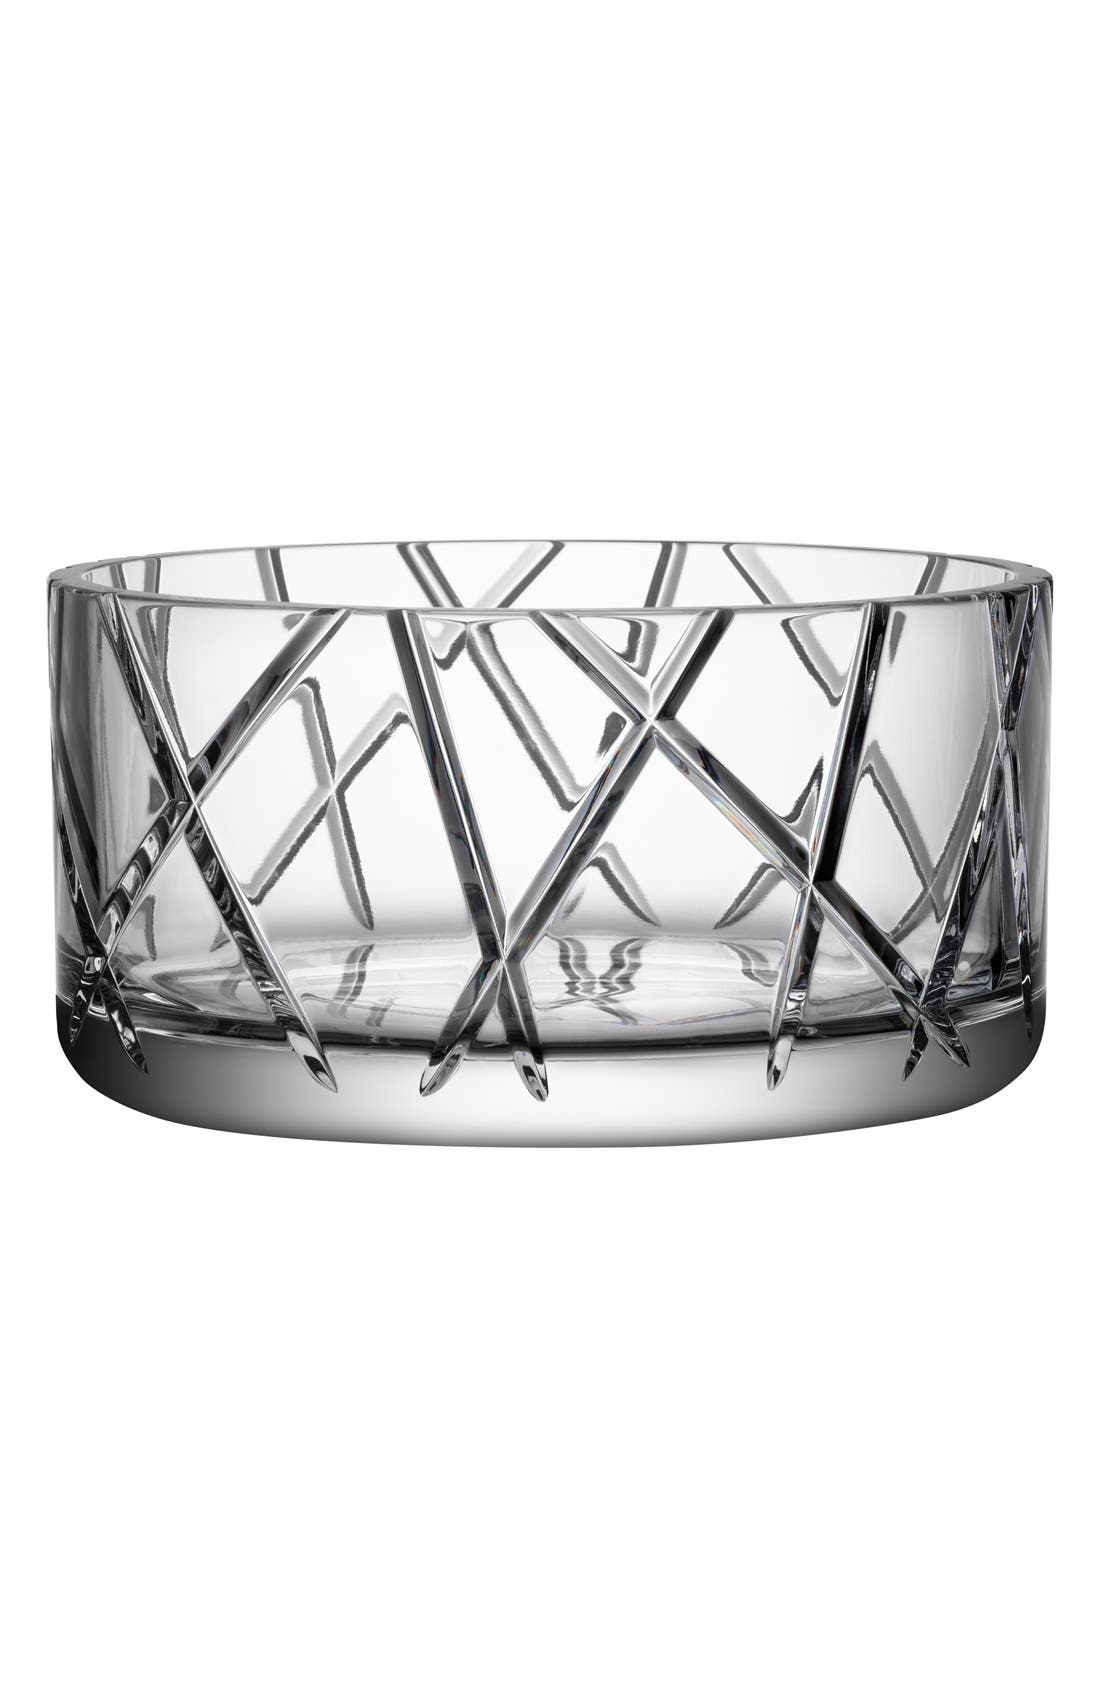 Main Image - Orrefors 'Explicit Stripes' Lead Crystal Bowl